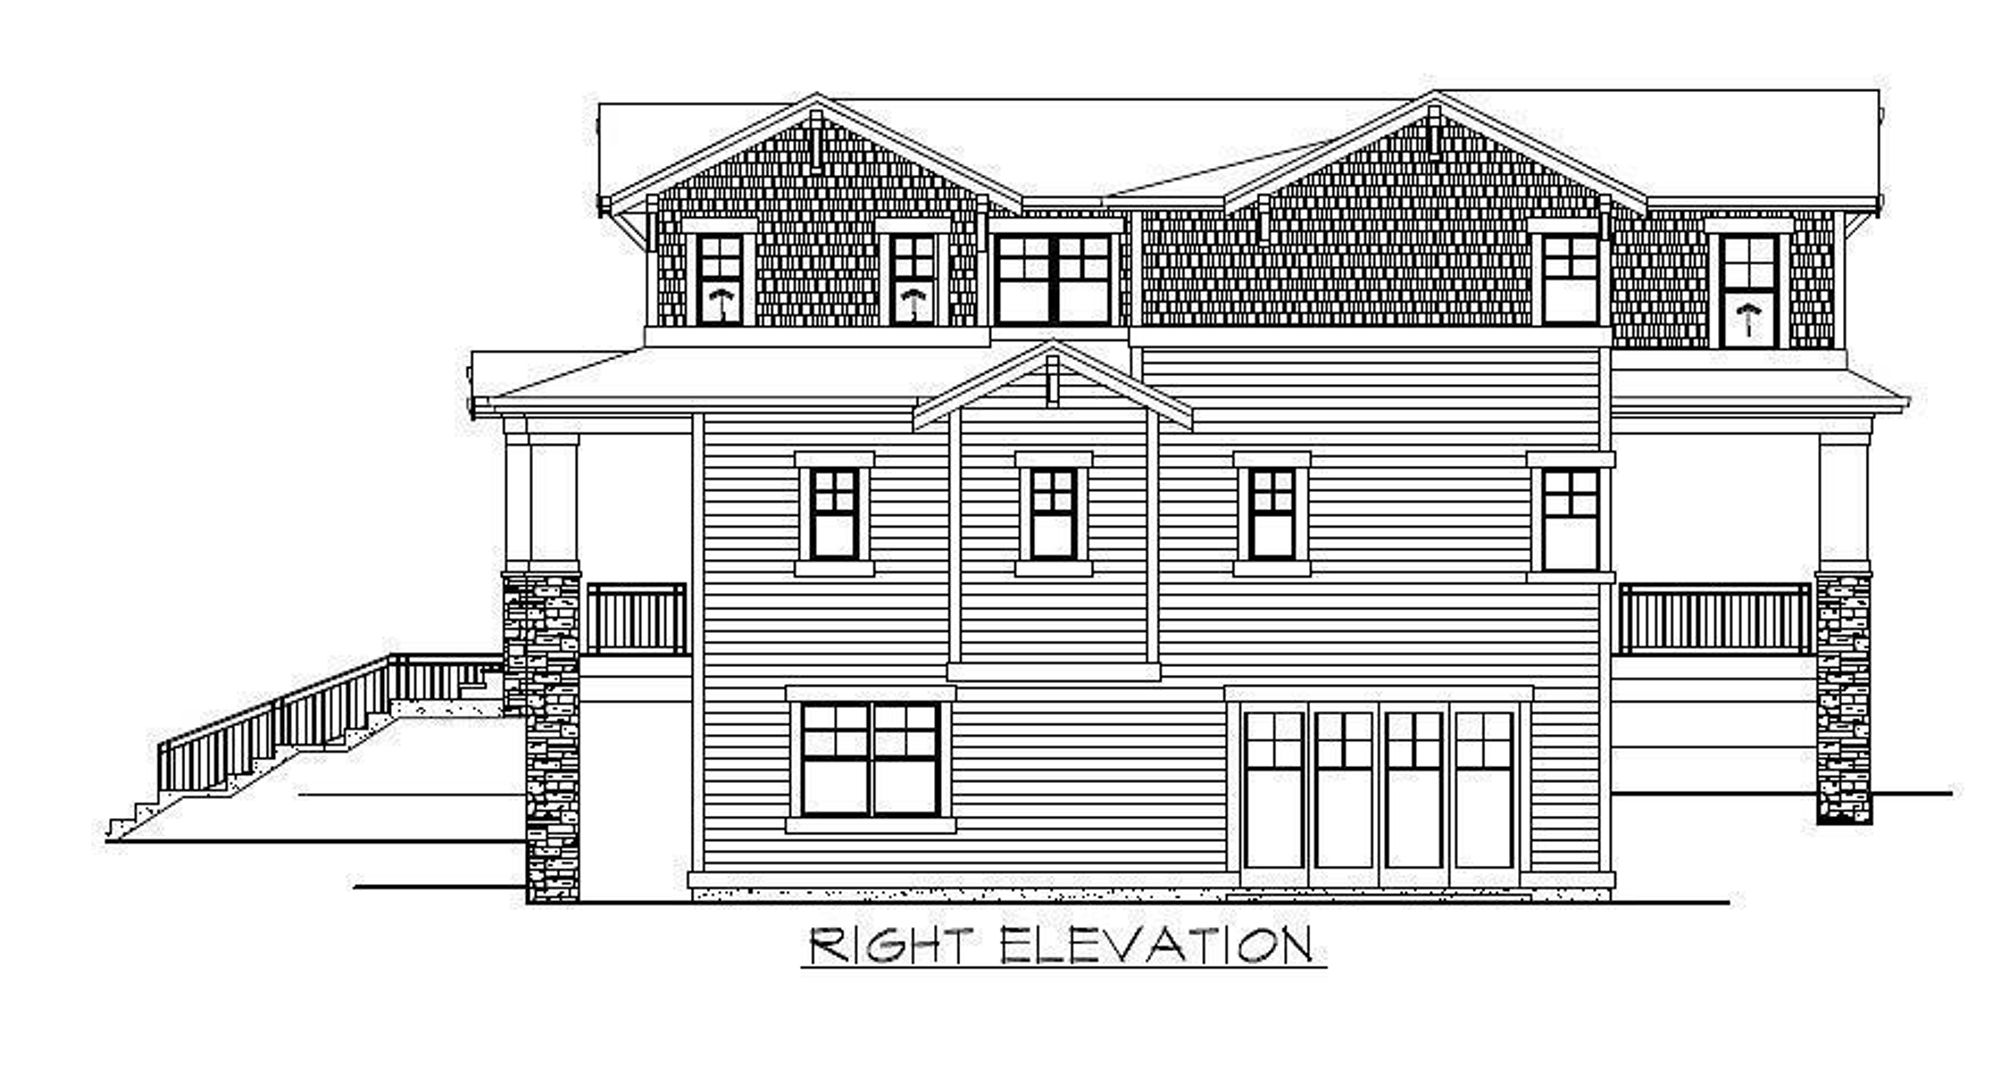 The Florence Avante Right Elevation Drawing